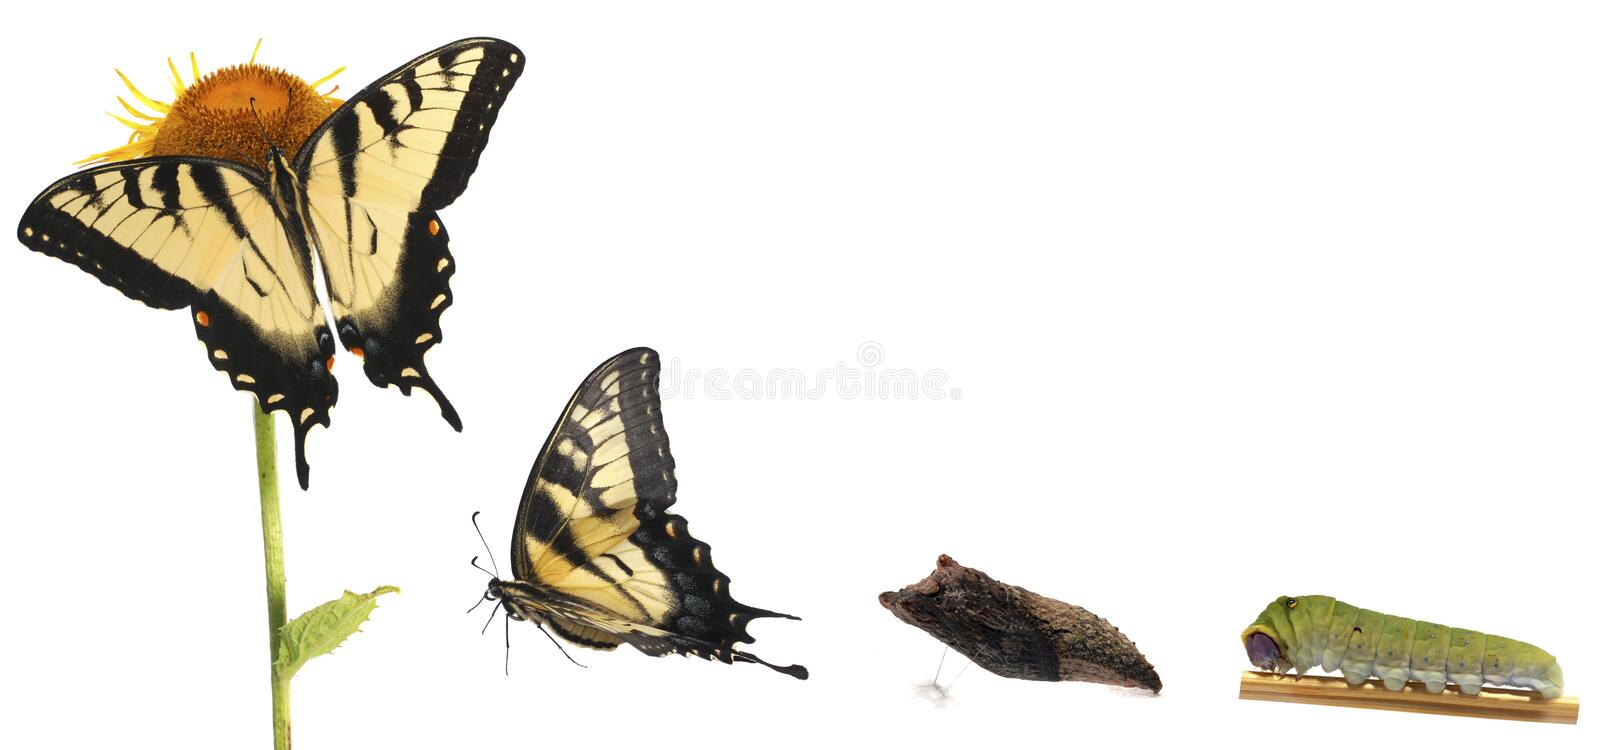 Tiger Swallowtail metamorphosis. Life cycle of the North American Papilio glaucus, showing caterpillar, chrysalis and adult butterfly stock images